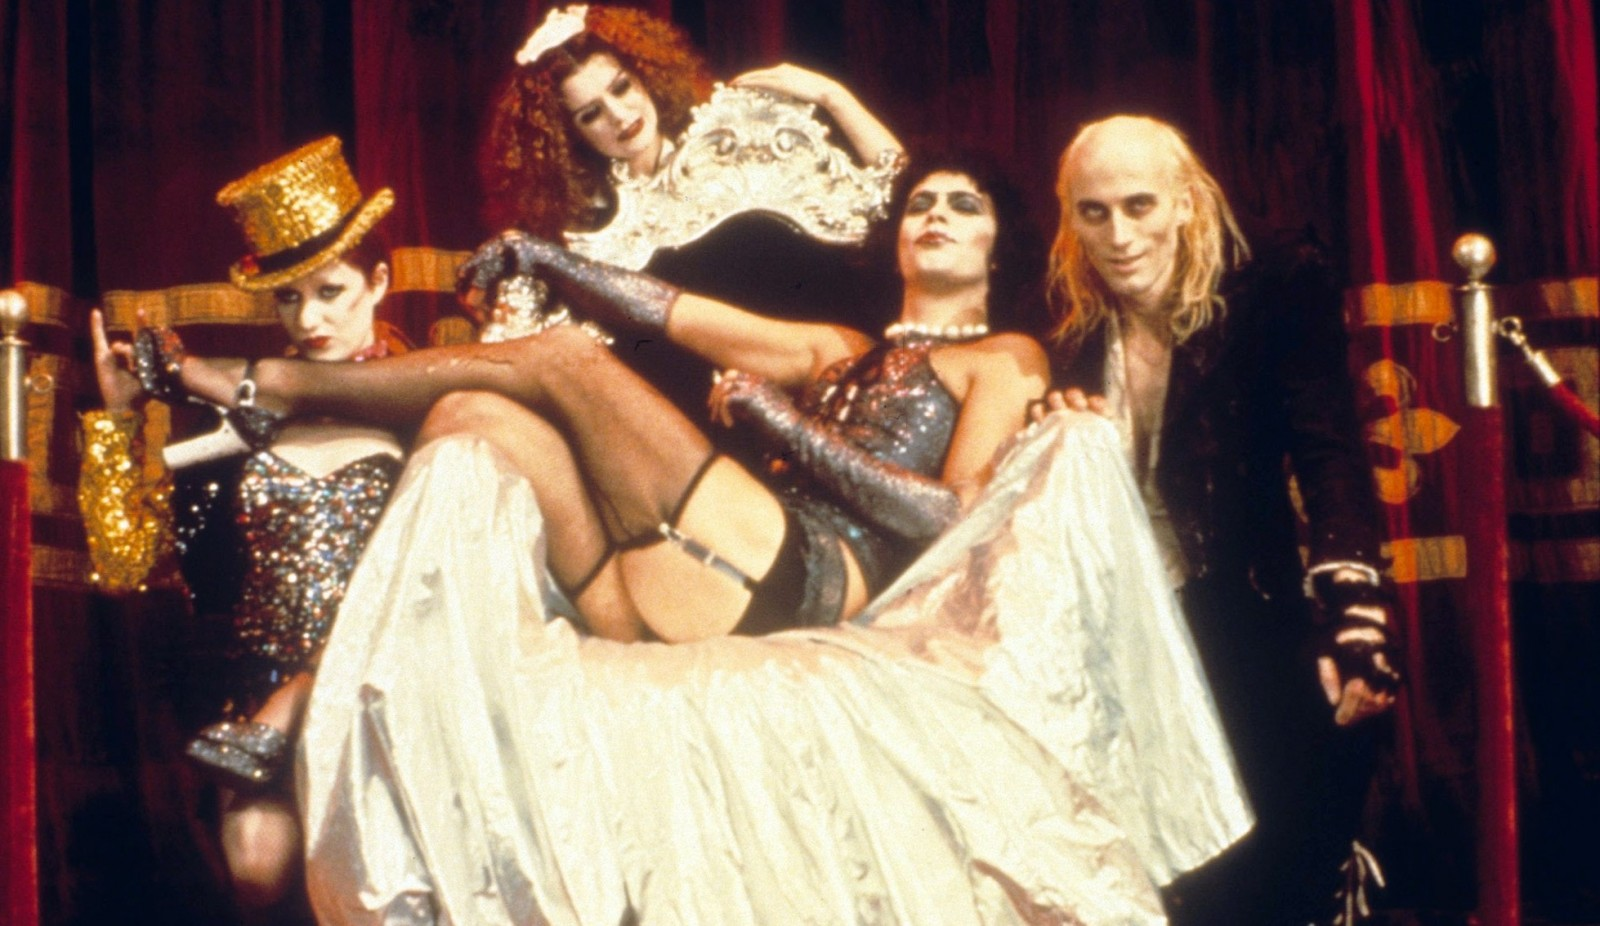 Moviegoers get in on the action at screenings of 'The Rocky Horror Picture Show,' which has multiple area showings.